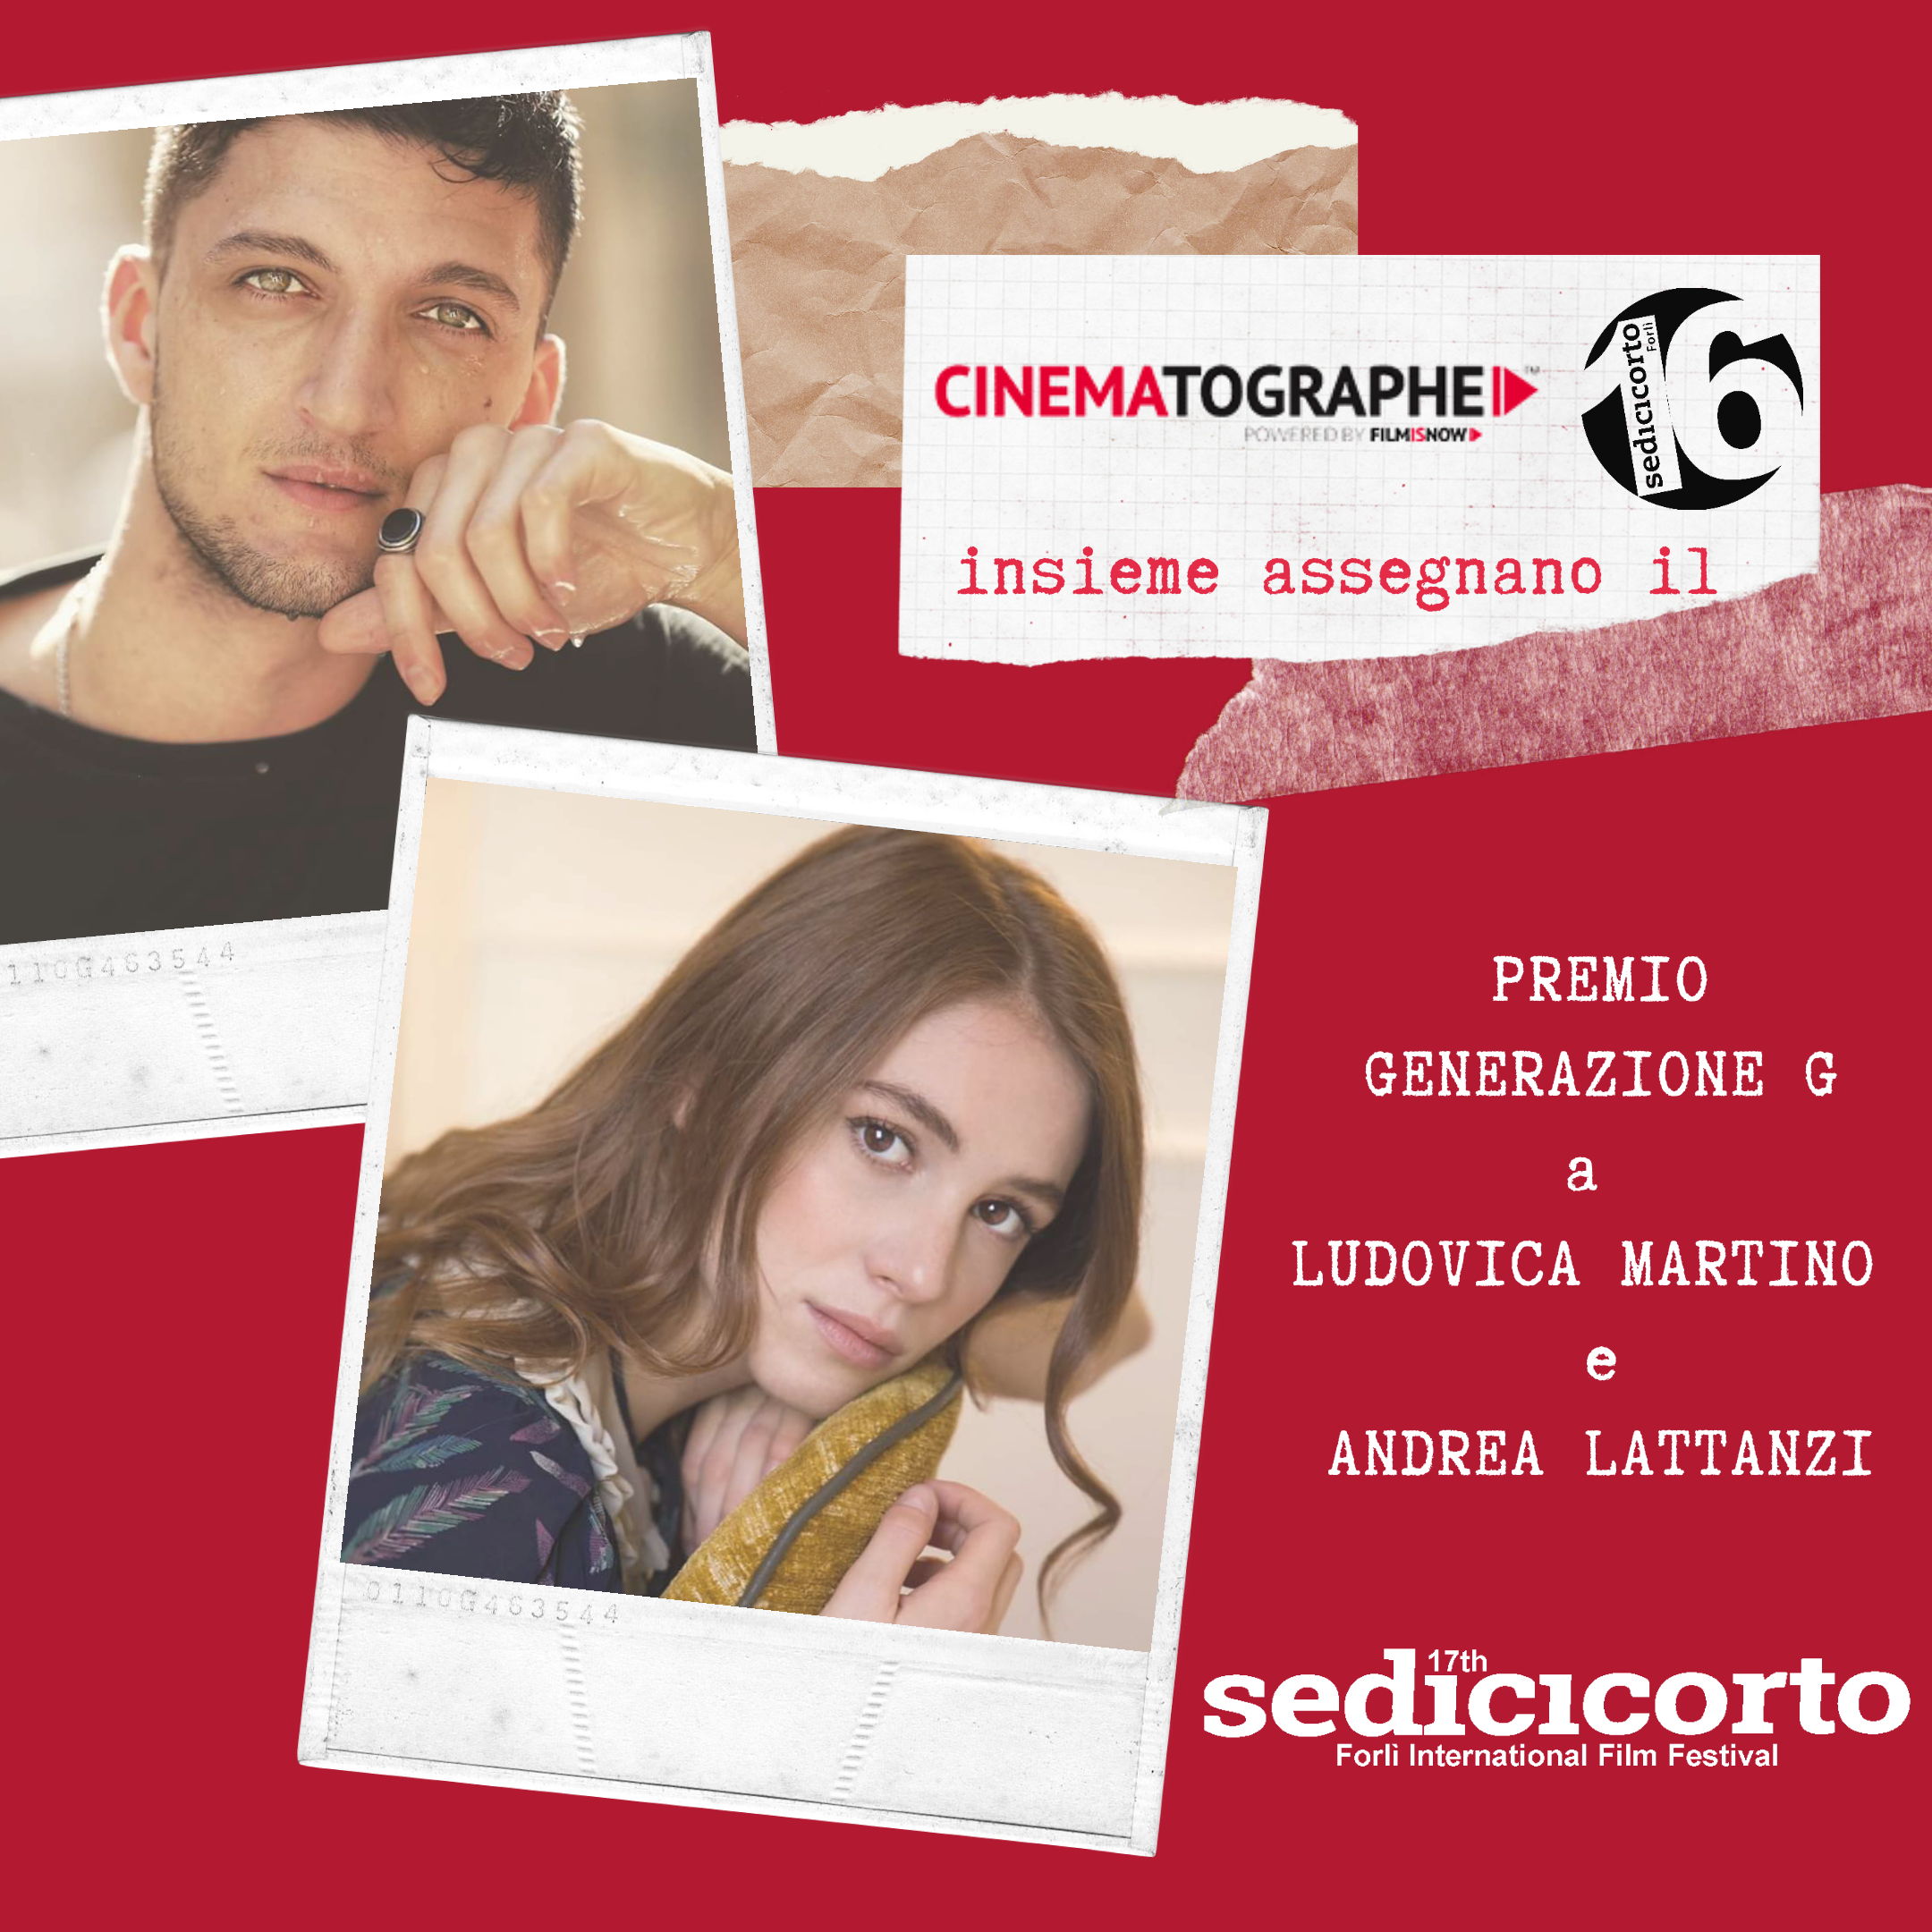 Sedicicorto 2020. The Generation G Award goes to Andrea Lattanzi e Ludovica Martino